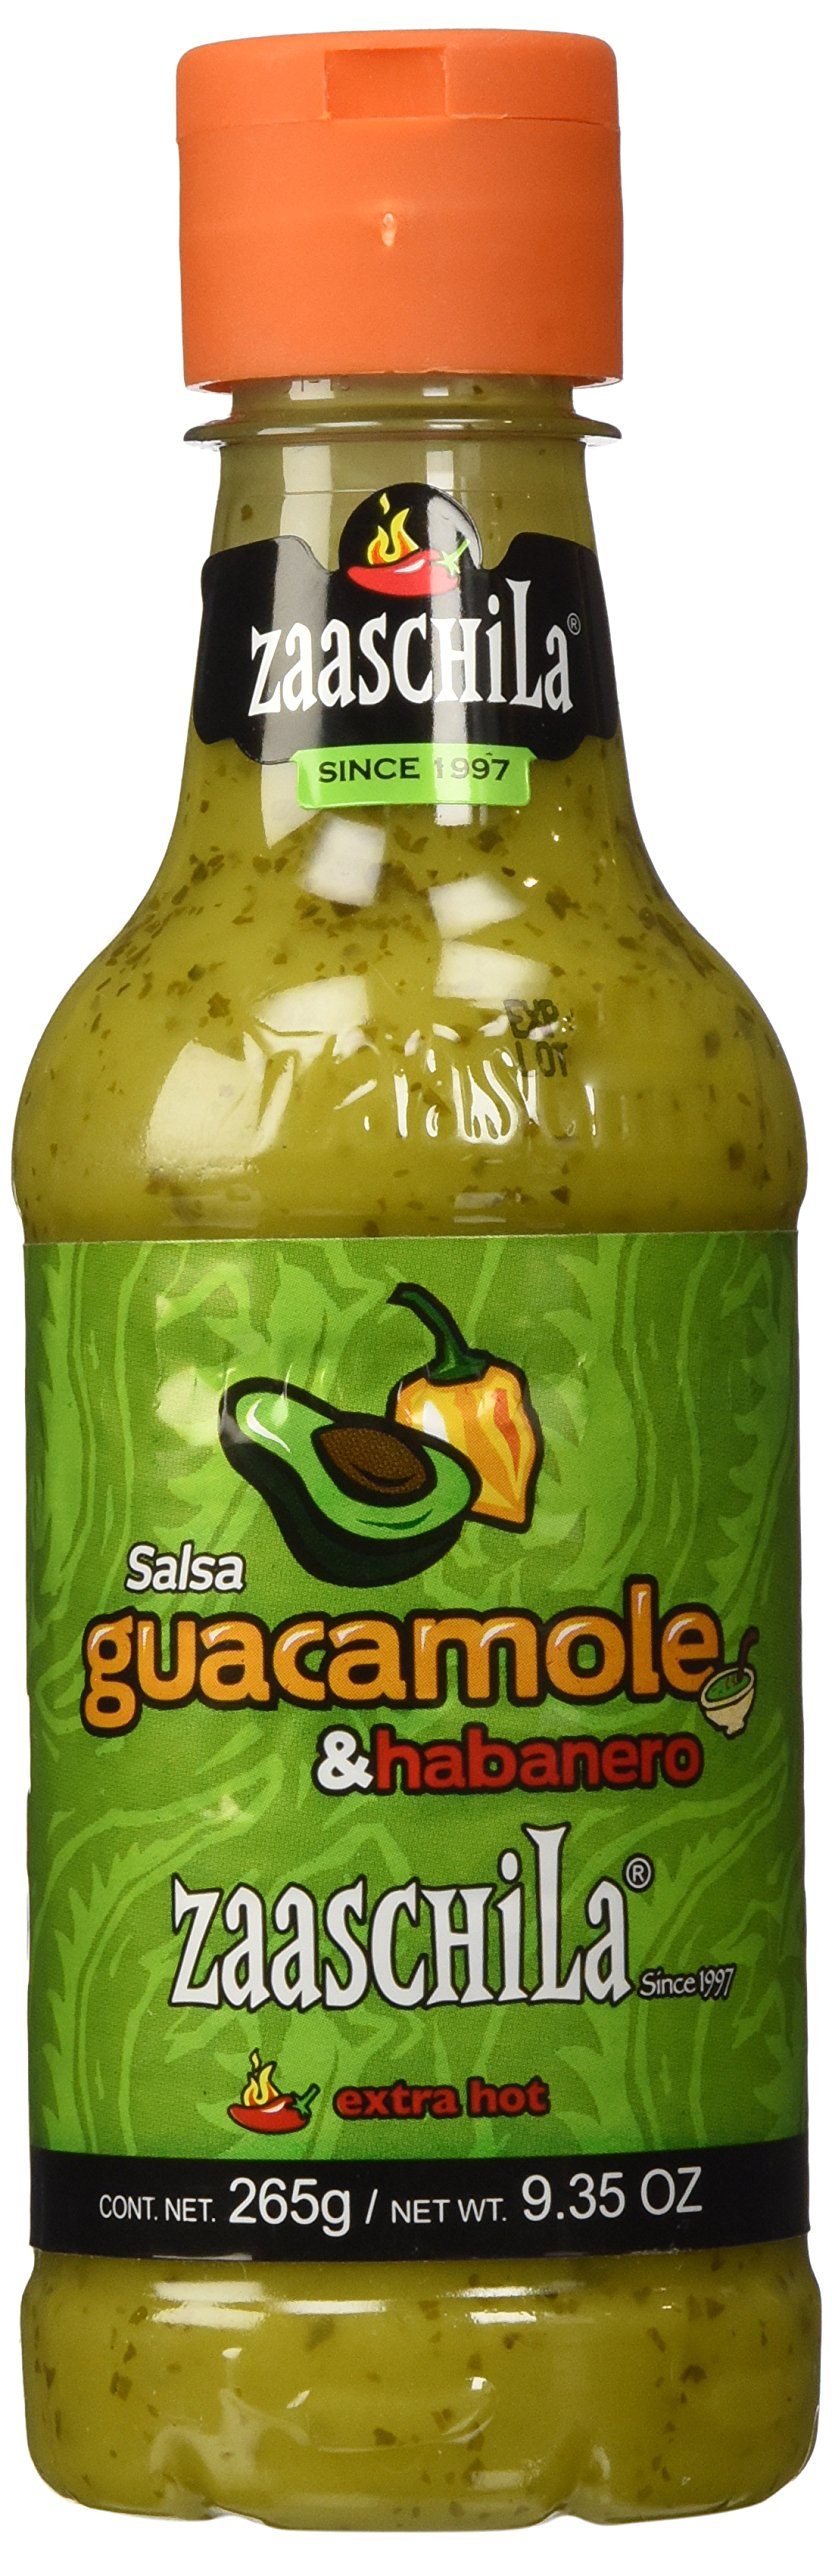 Zaaschila, Guacamole with Habanero 9.35oz (265g)